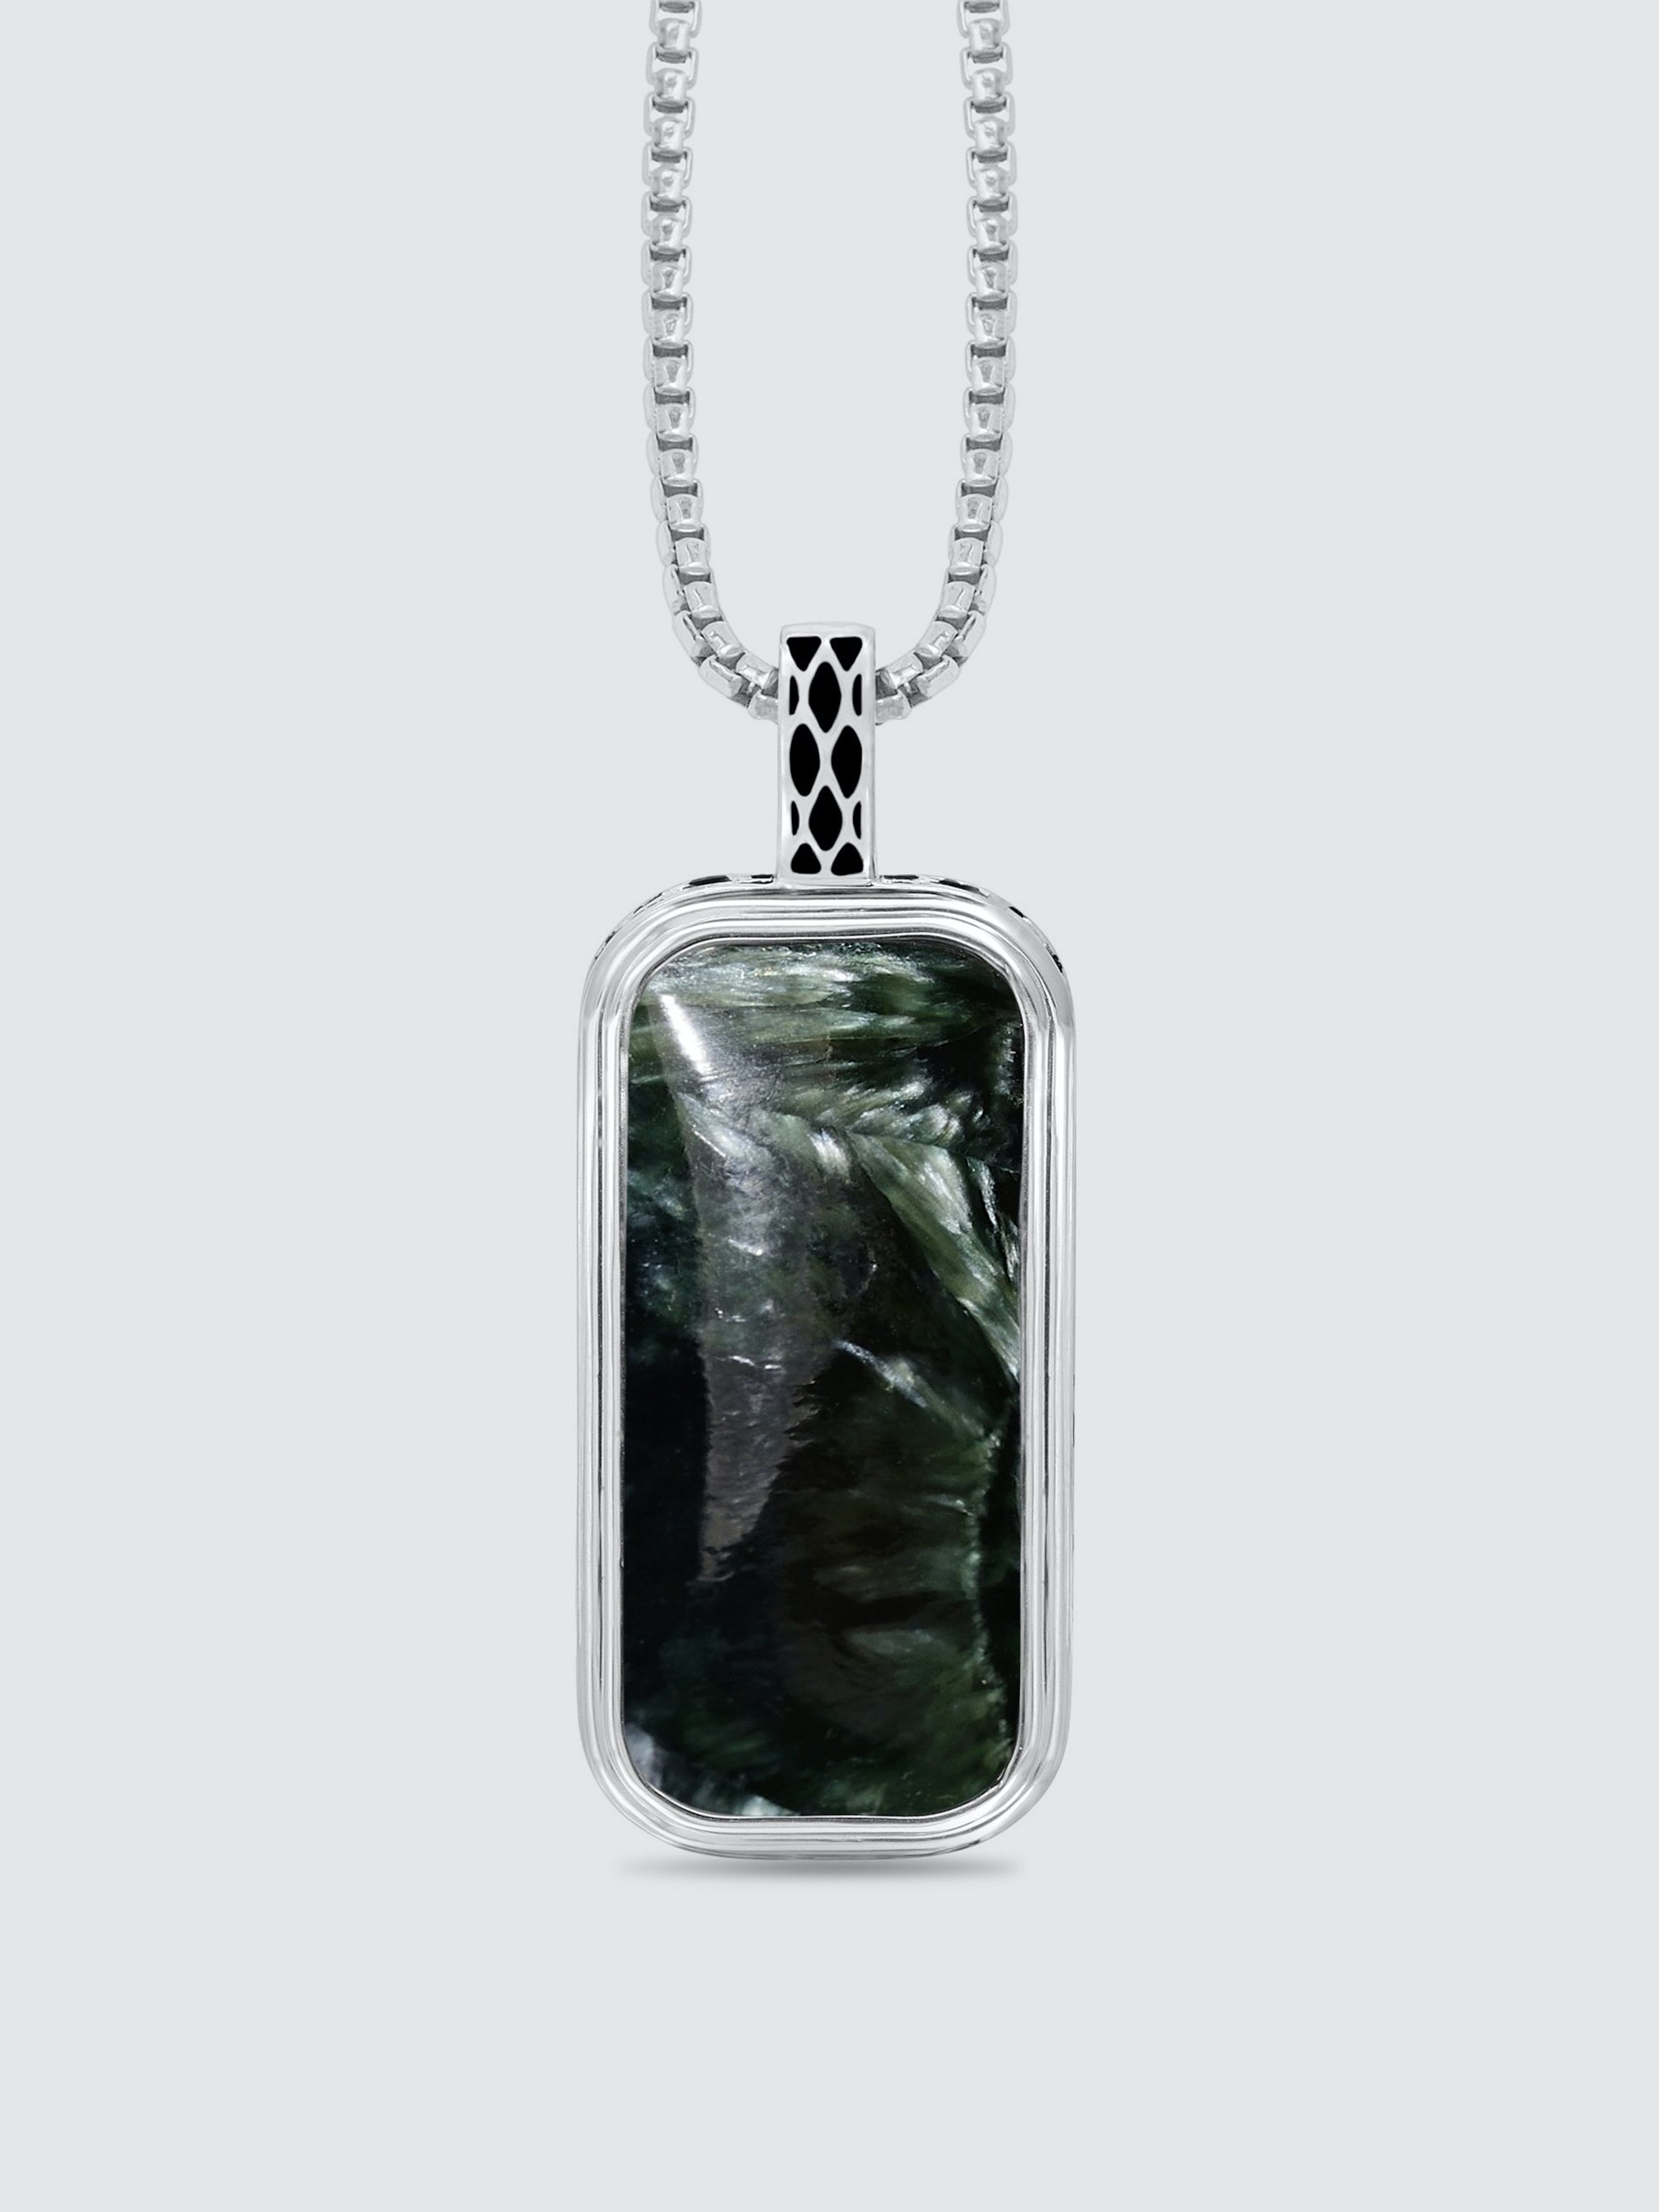 Luvmyjewelry Seraphinite Stone Tag In Black Rhodium Plated Sterling Silver In Grey